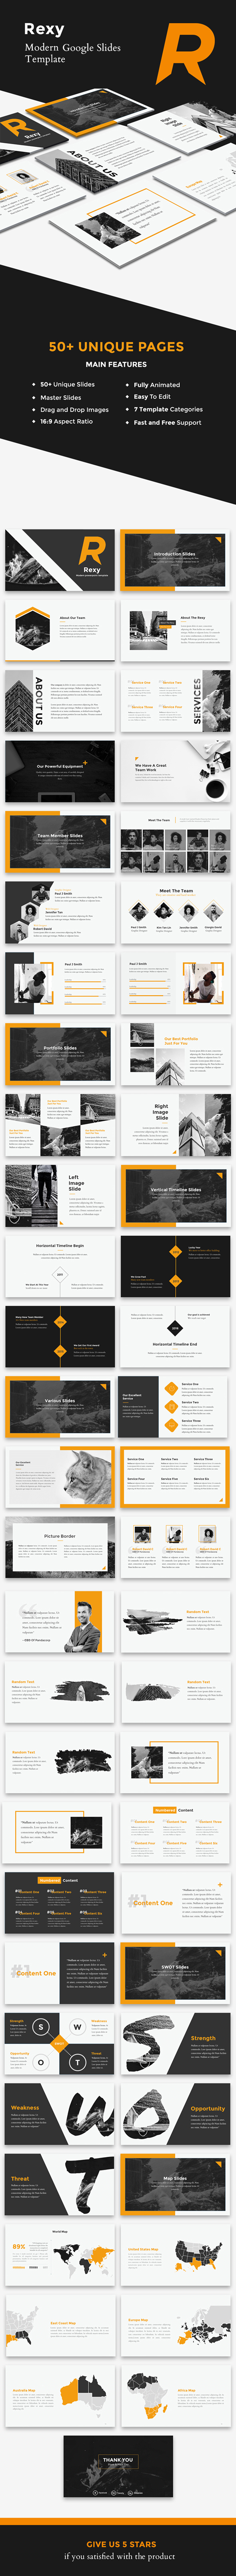 Rexy - Modern Google Slides Template by suavedigital | GraphicRiver